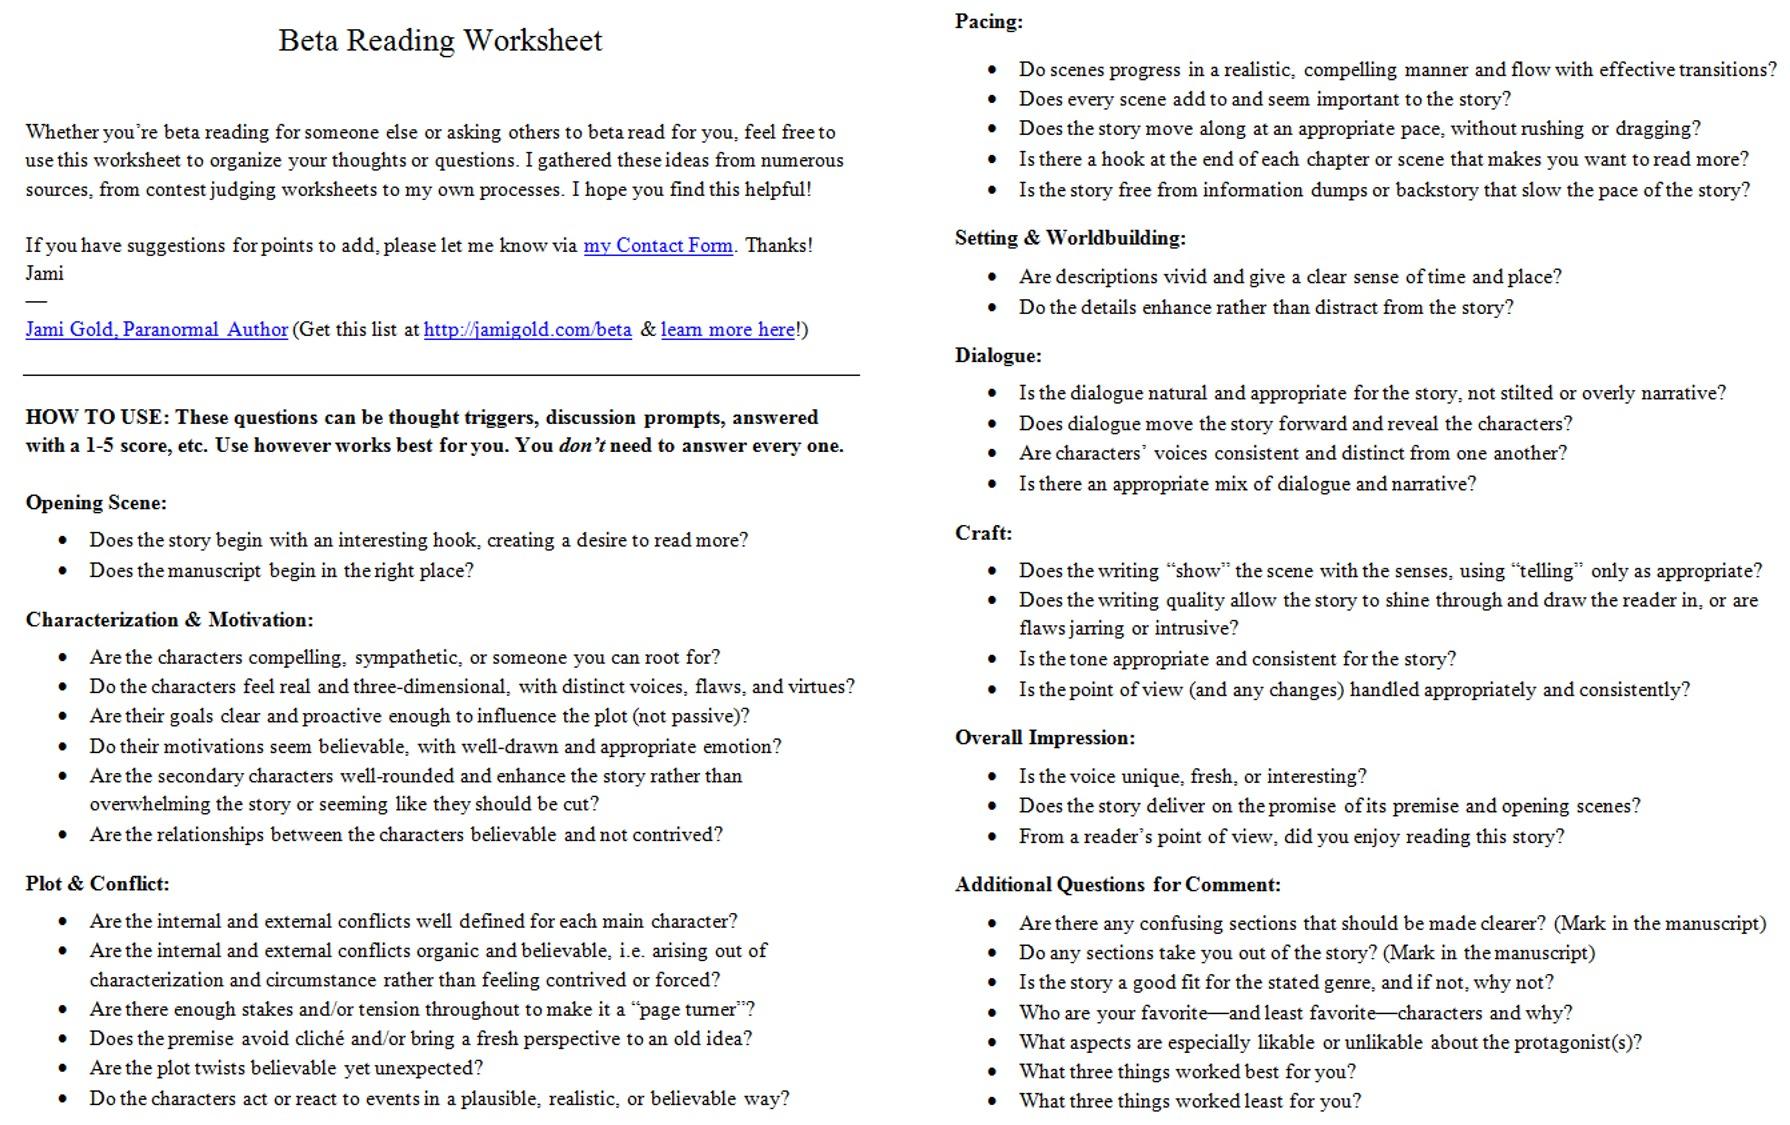 Aldiablosus  Marvellous Worksheets For Writers  Jami Gold Paranormal Author With Heavenly Screen Shot Of The Twopage Beta Reading Worksheet With Nice Multiplication     Worksheets Also Math Worksheet Generators In Addition The Mixed Up Chameleon Worksheets And Converting Units Of Capacity Worksheet As Well As Capital Letters And Full Stops Worksheets Ks Additionally Free Chinese New Year Worksheets From Jamigoldcom With Aldiablosus  Heavenly Worksheets For Writers  Jami Gold Paranormal Author With Nice Screen Shot Of The Twopage Beta Reading Worksheet And Marvellous Multiplication     Worksheets Also Math Worksheet Generators In Addition The Mixed Up Chameleon Worksheets From Jamigoldcom